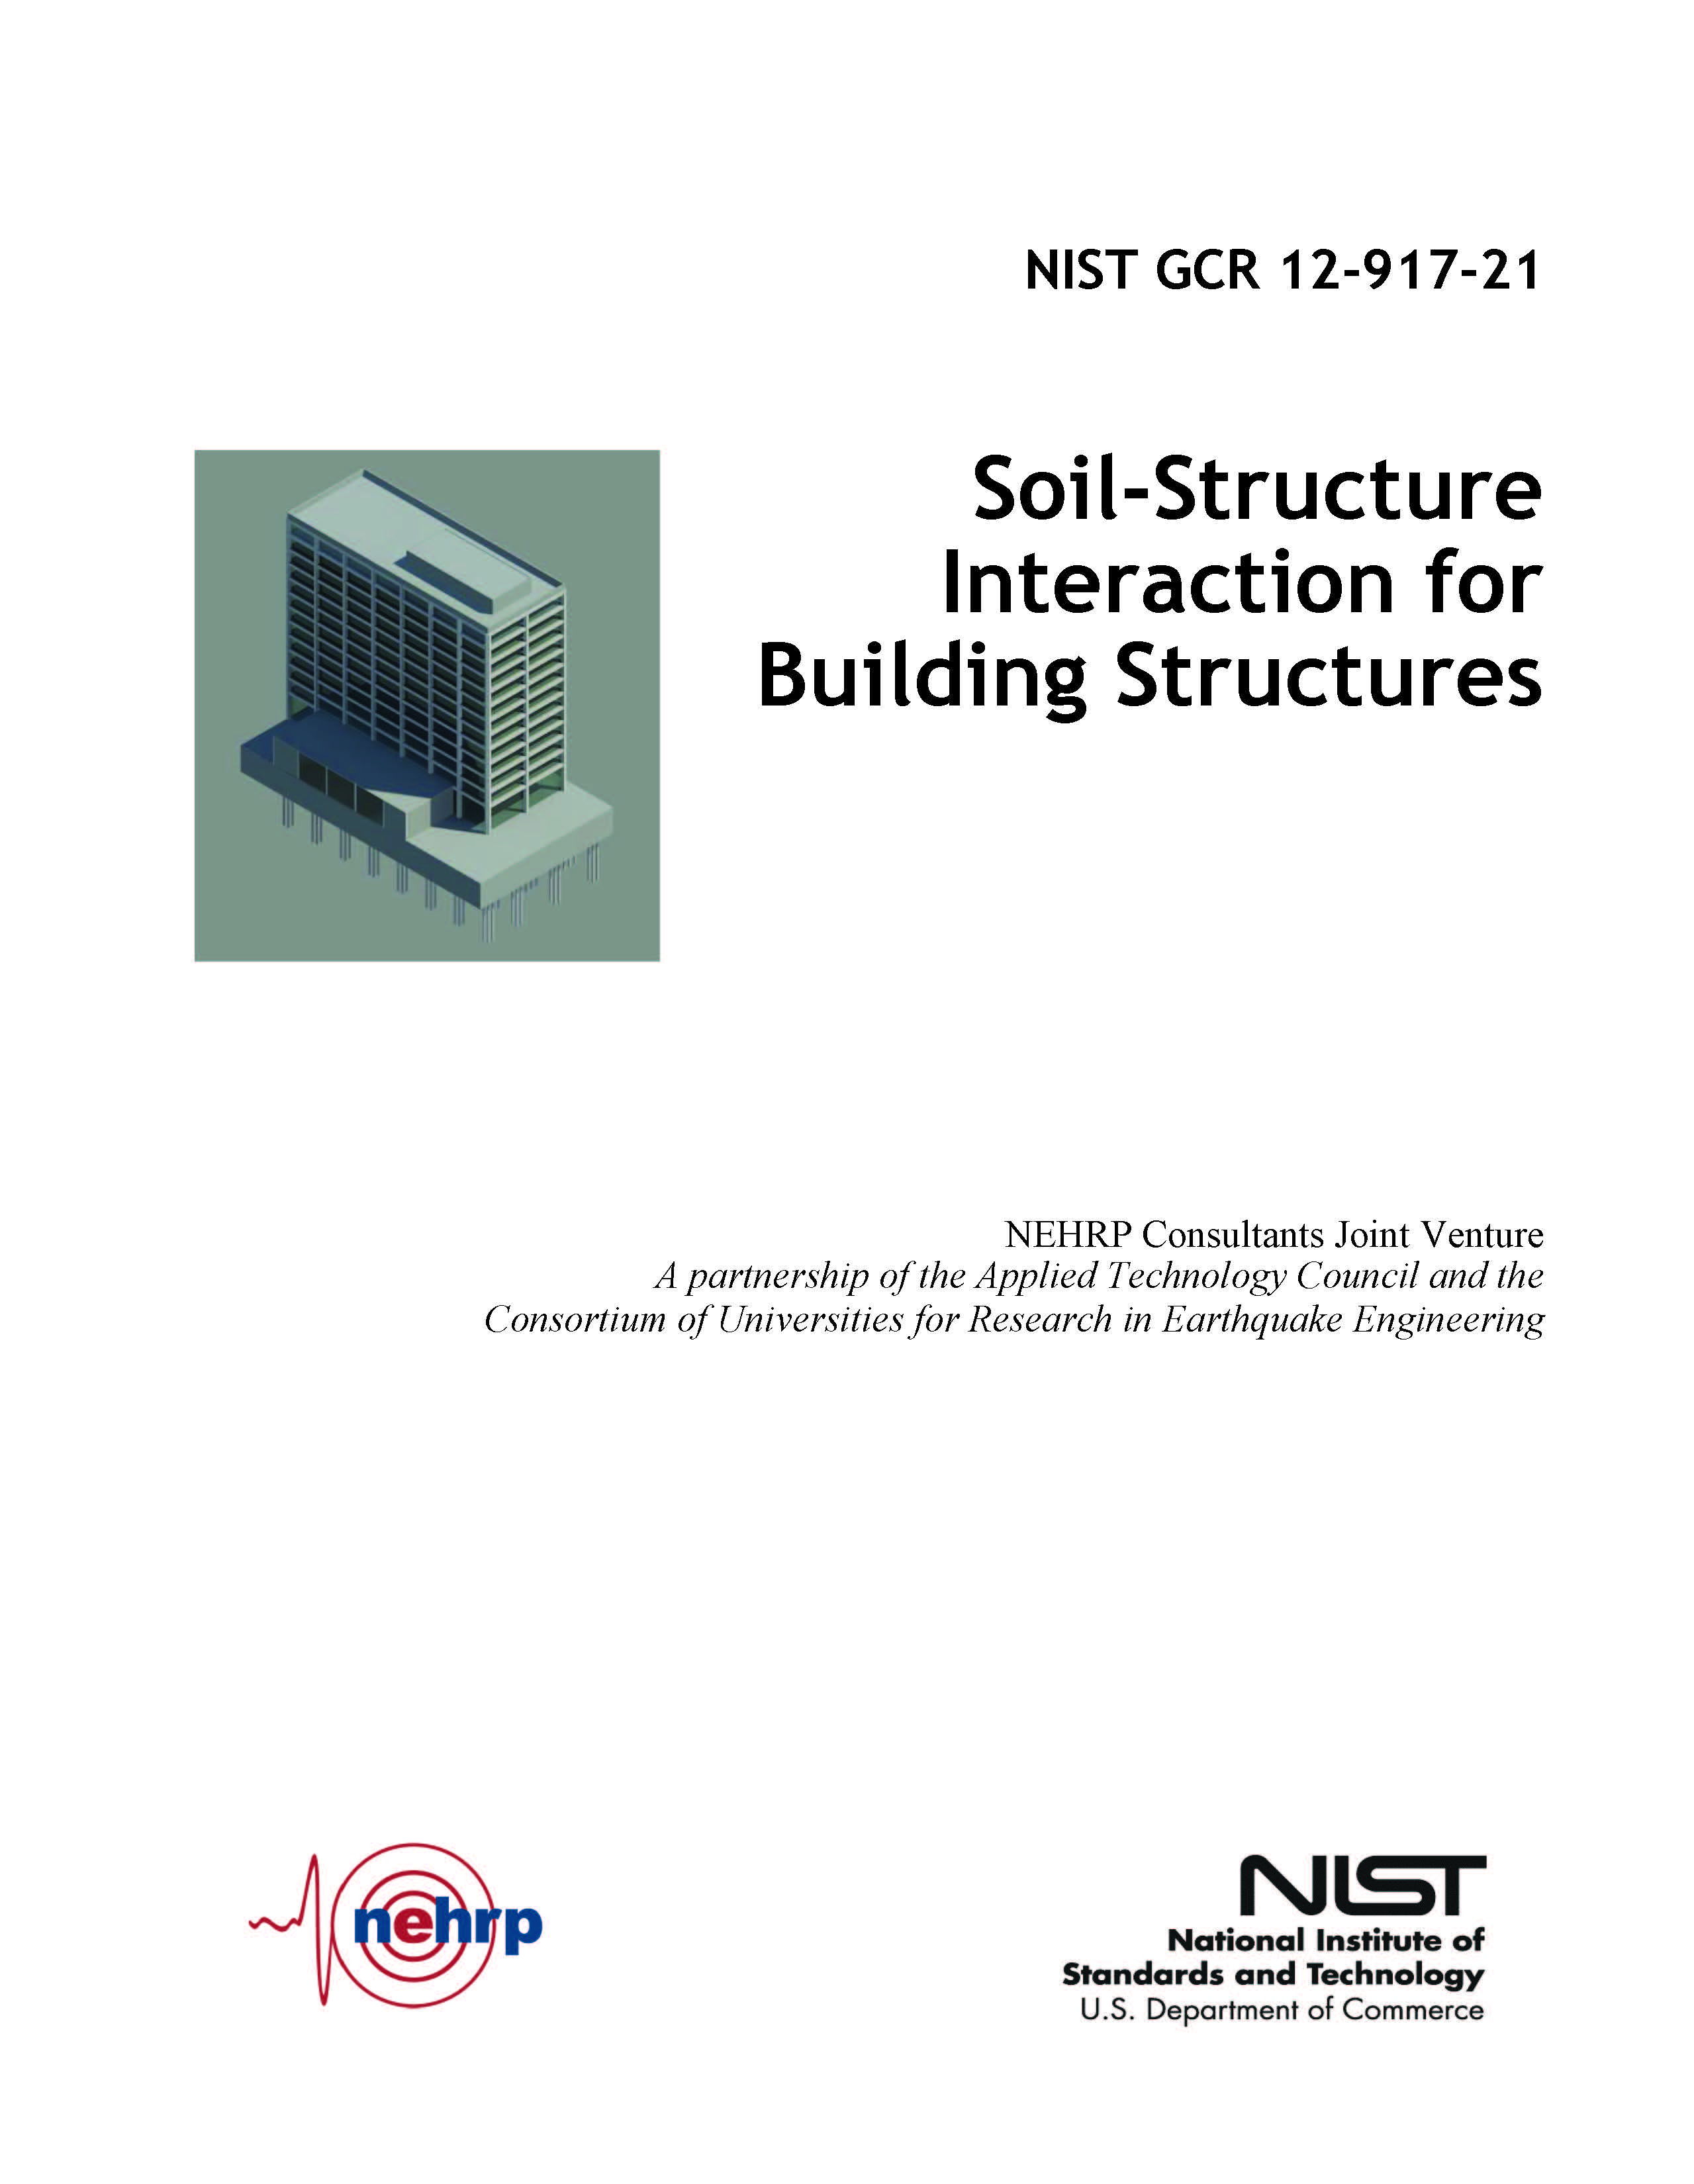 NIST的新书Soil-Structure Interaction for Building Structures